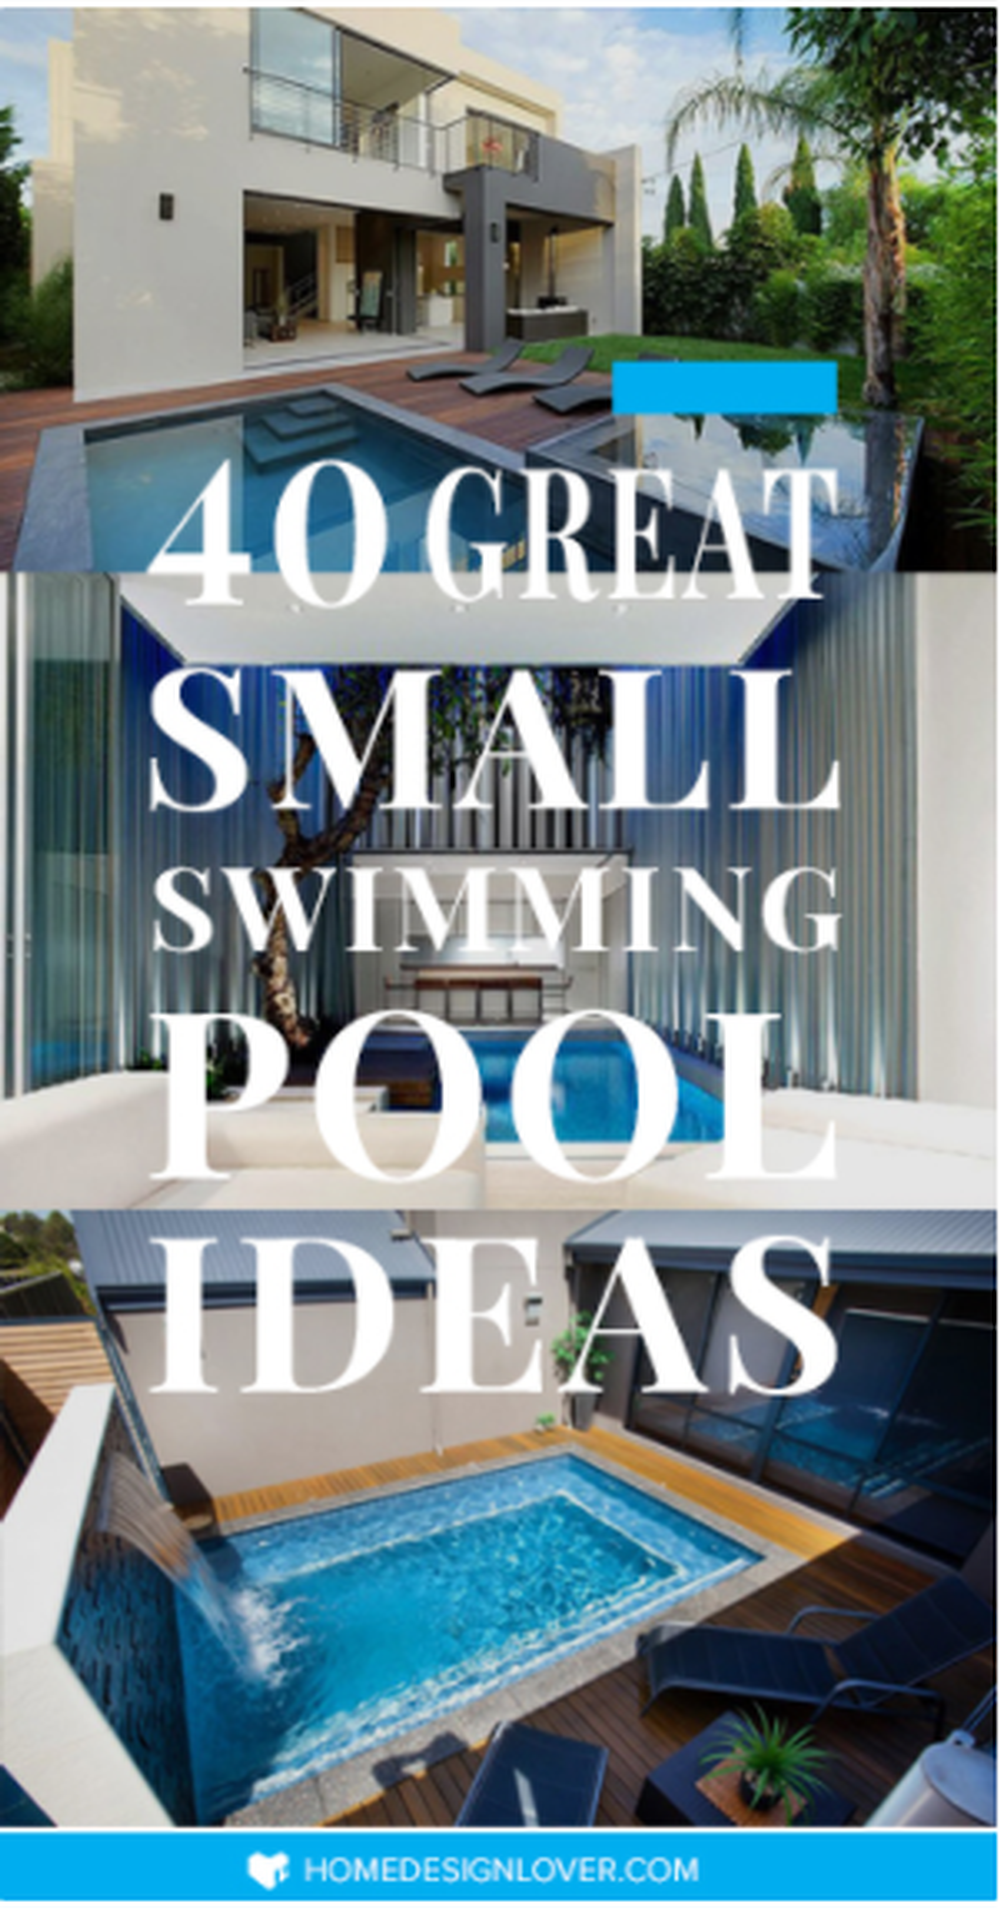 40-Great-Small-Swimming-Pools-Ideas-Home-Design-Lover.png